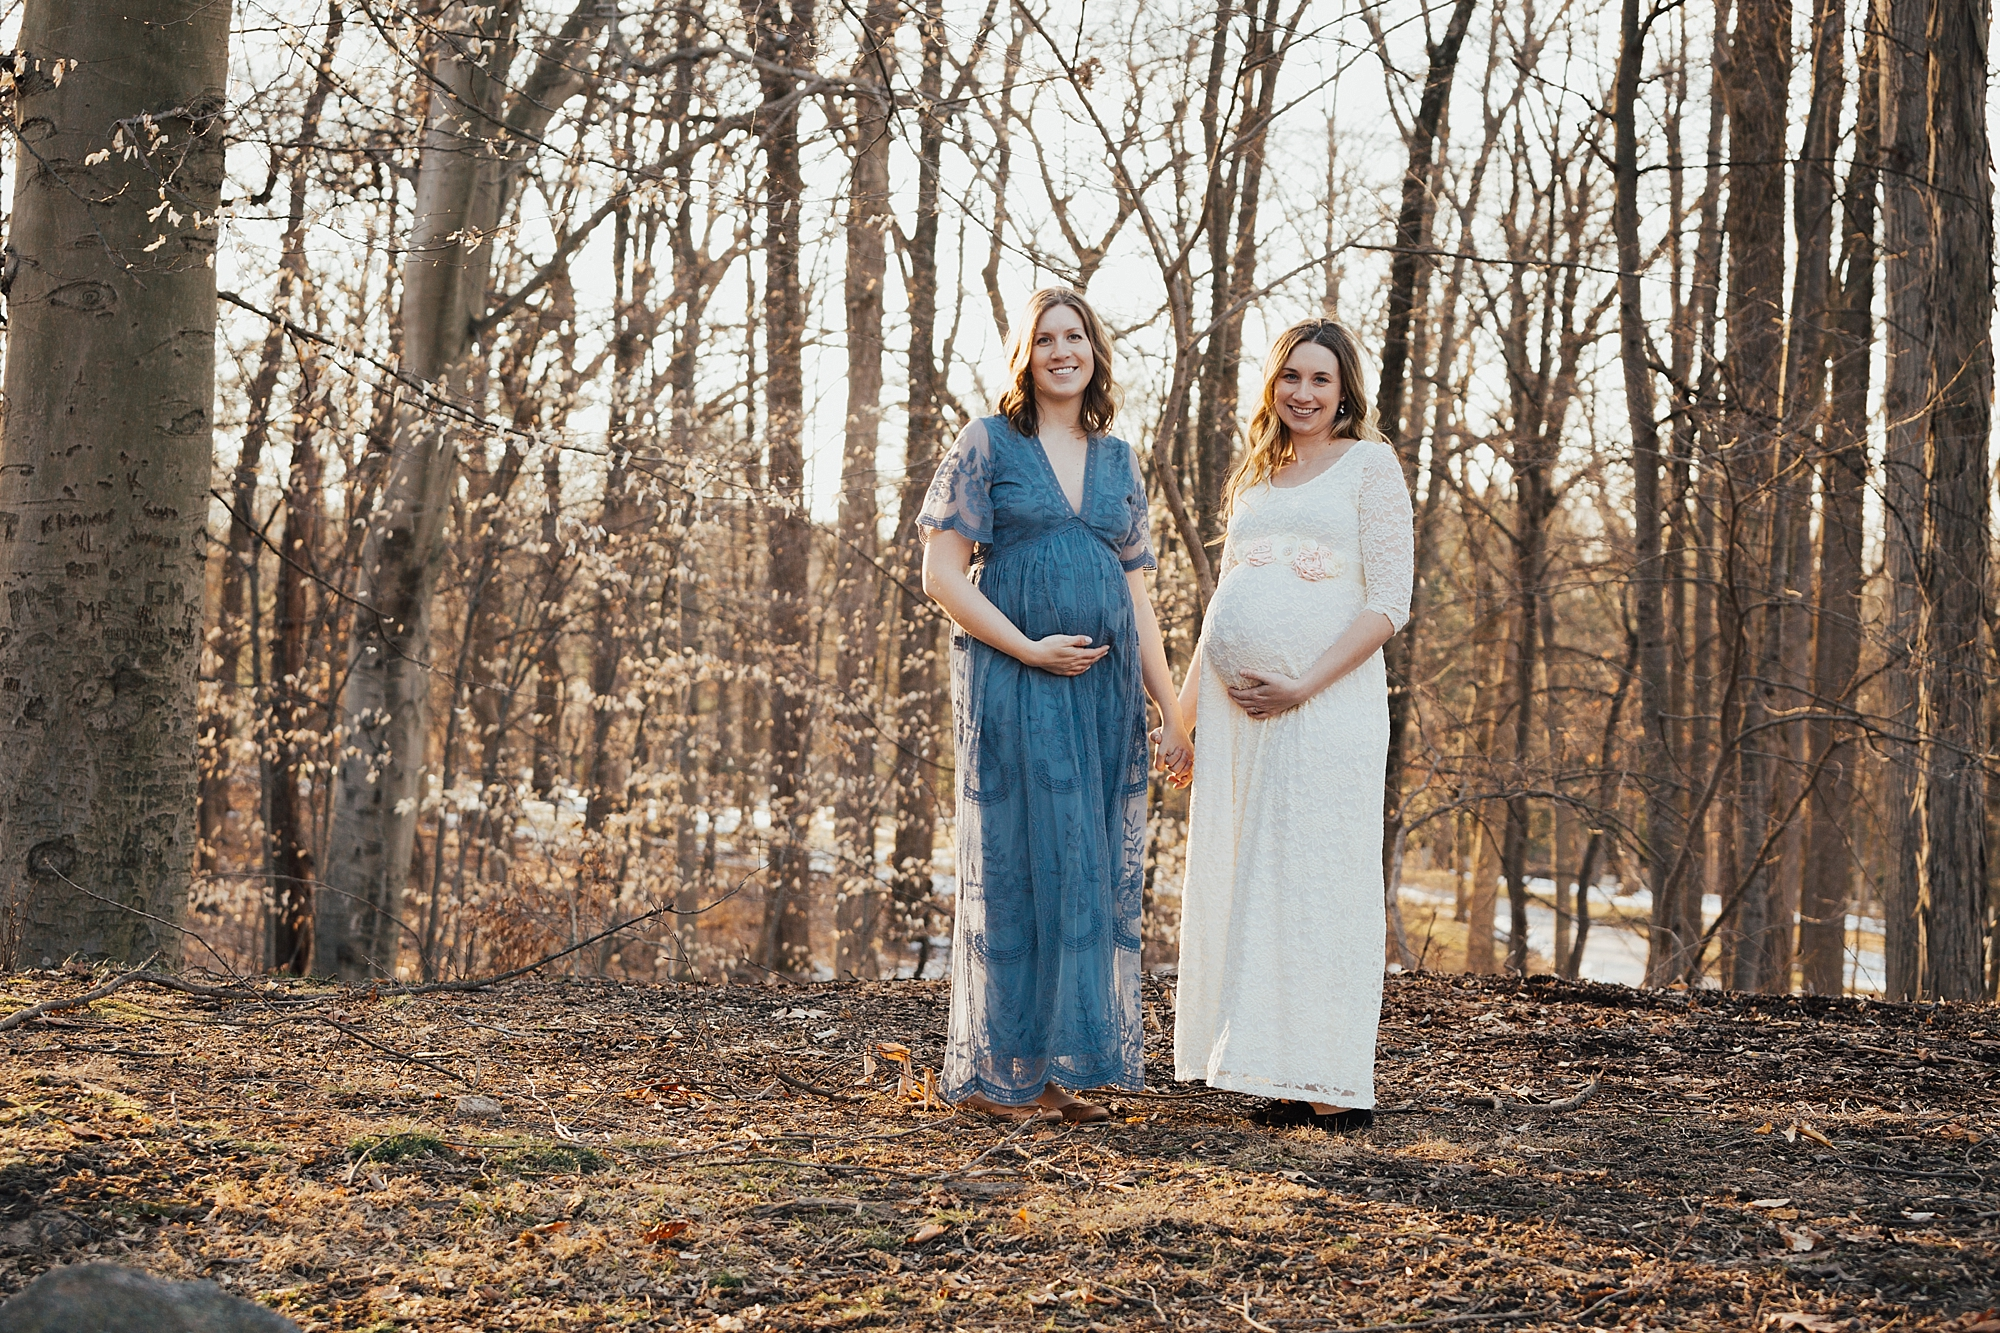 Joe_Mac_Creative_Maternity_Wedding_Engagements_Photography_Philadelphia_Valley_Forge__0045.jpg